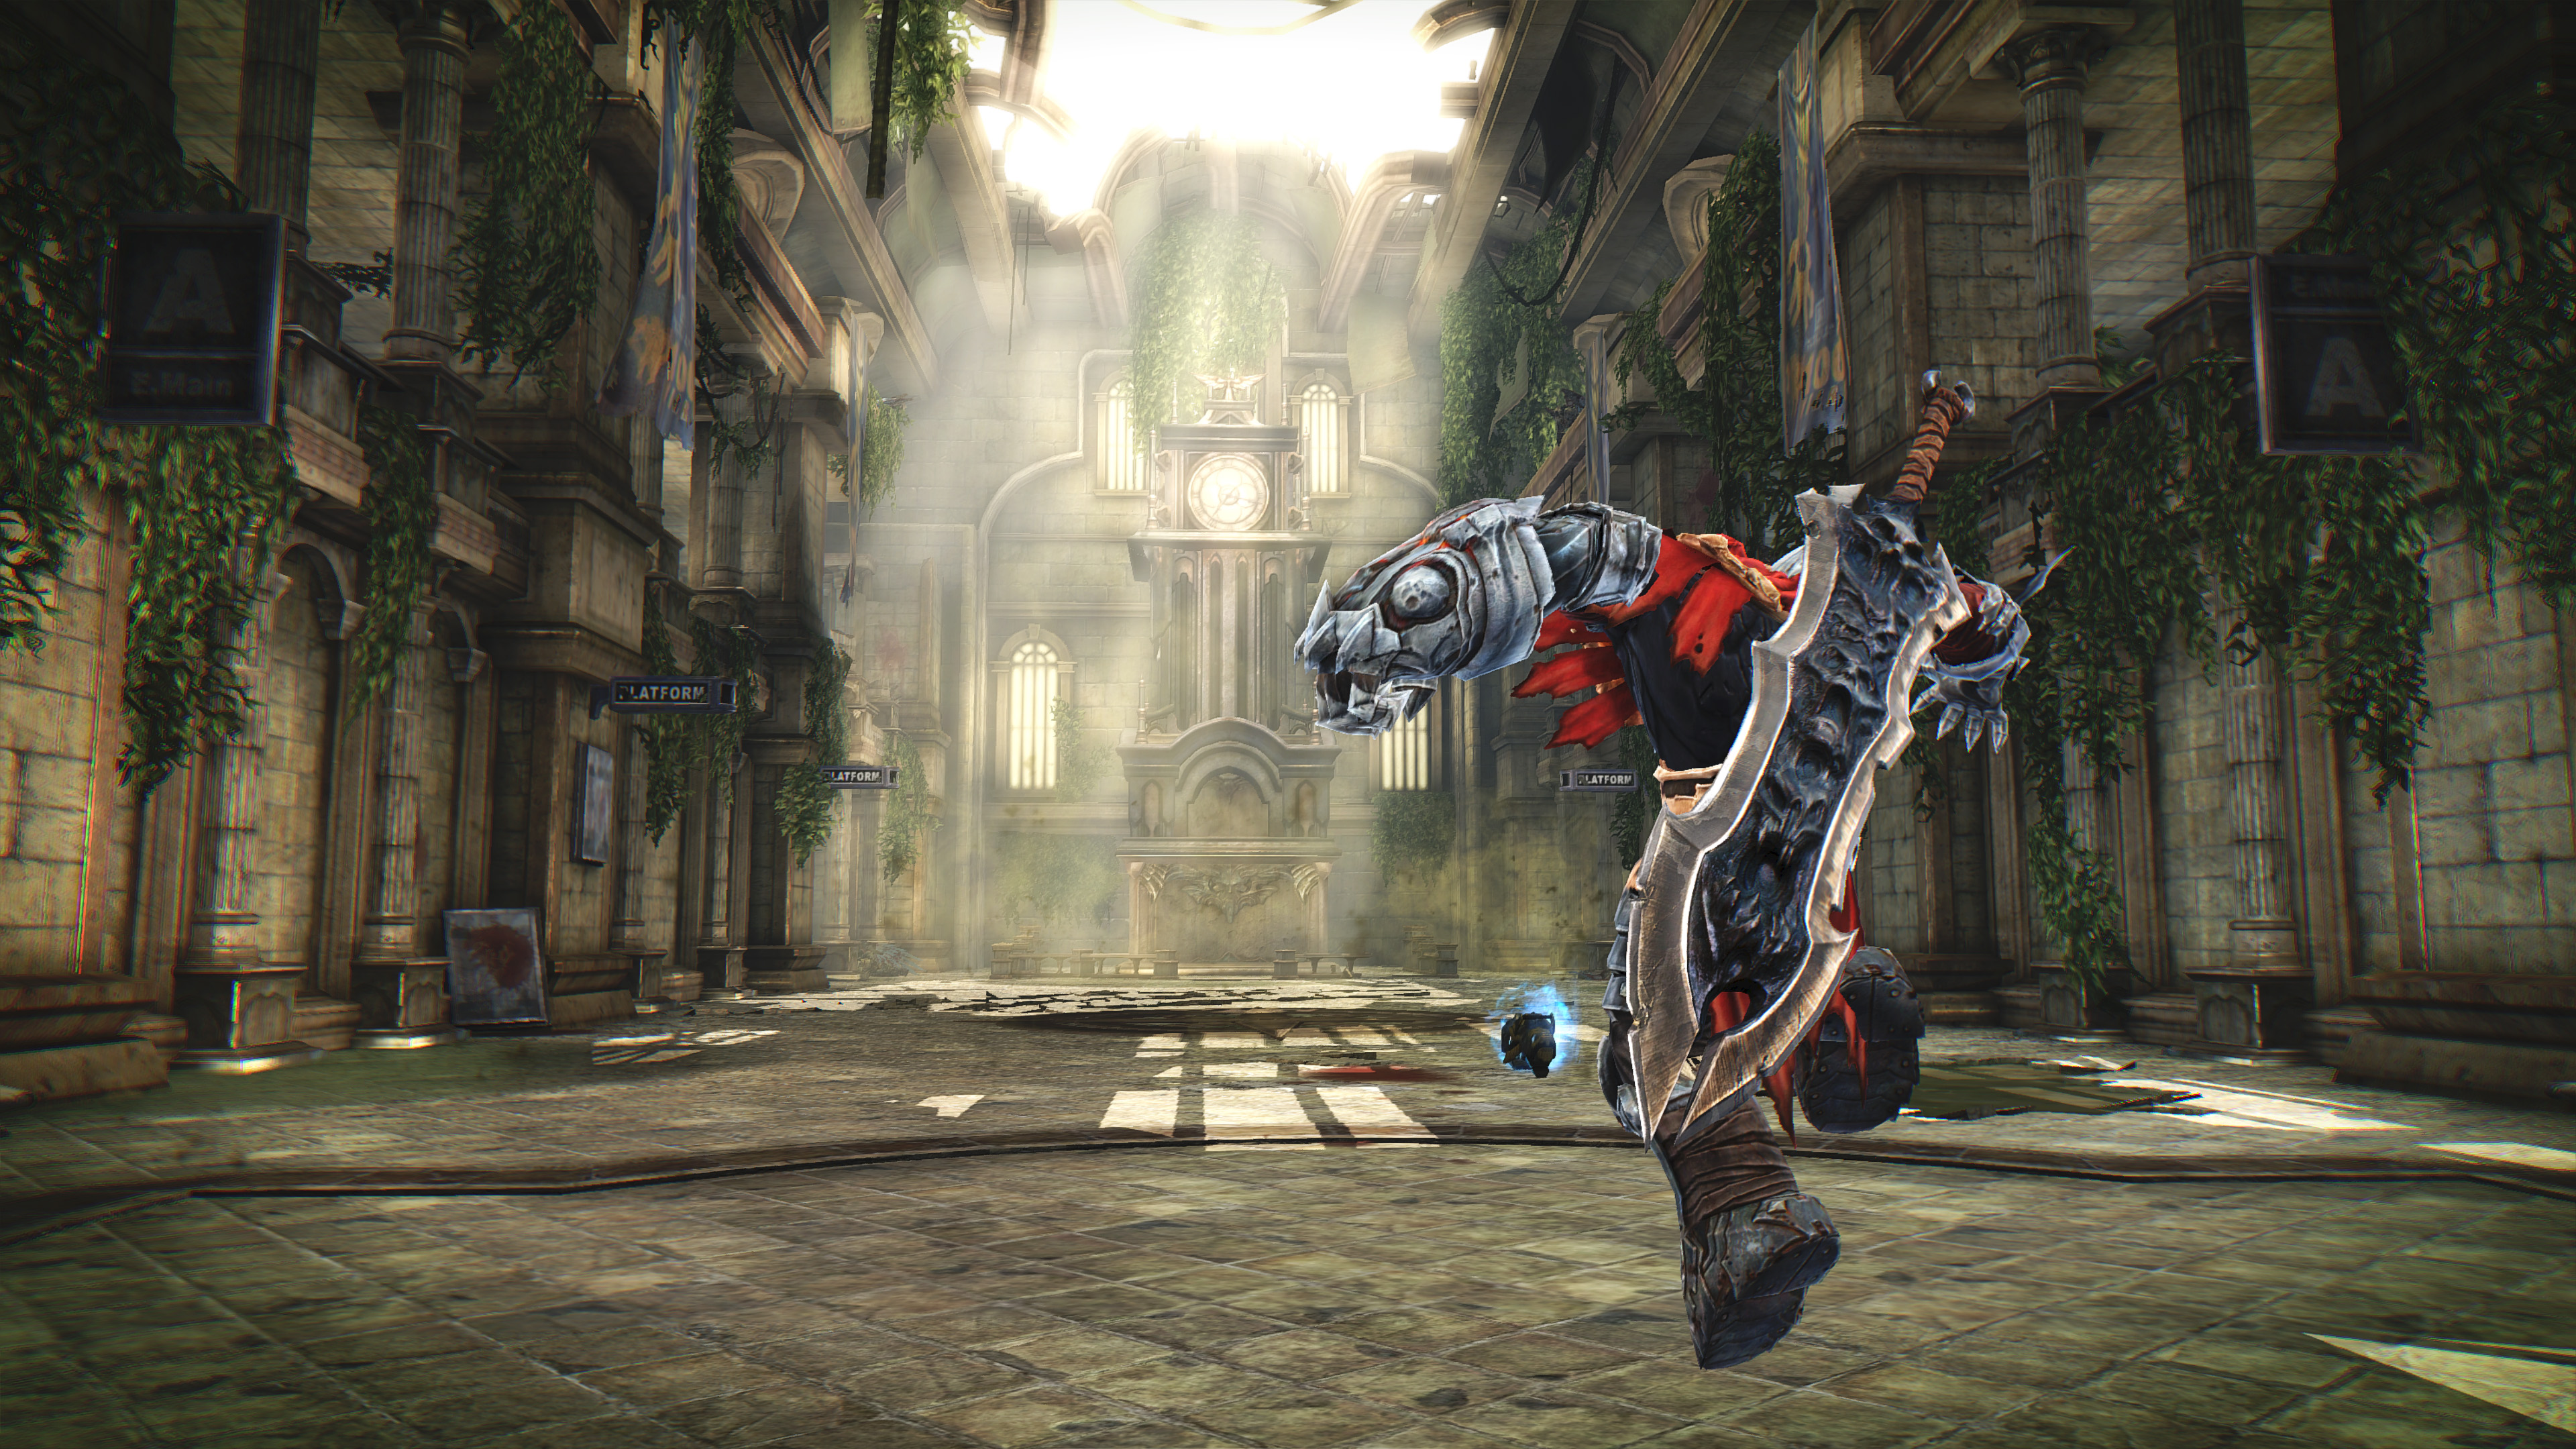 Darksiders Warmastered Edition will support 4K on PS4 Pro and PC